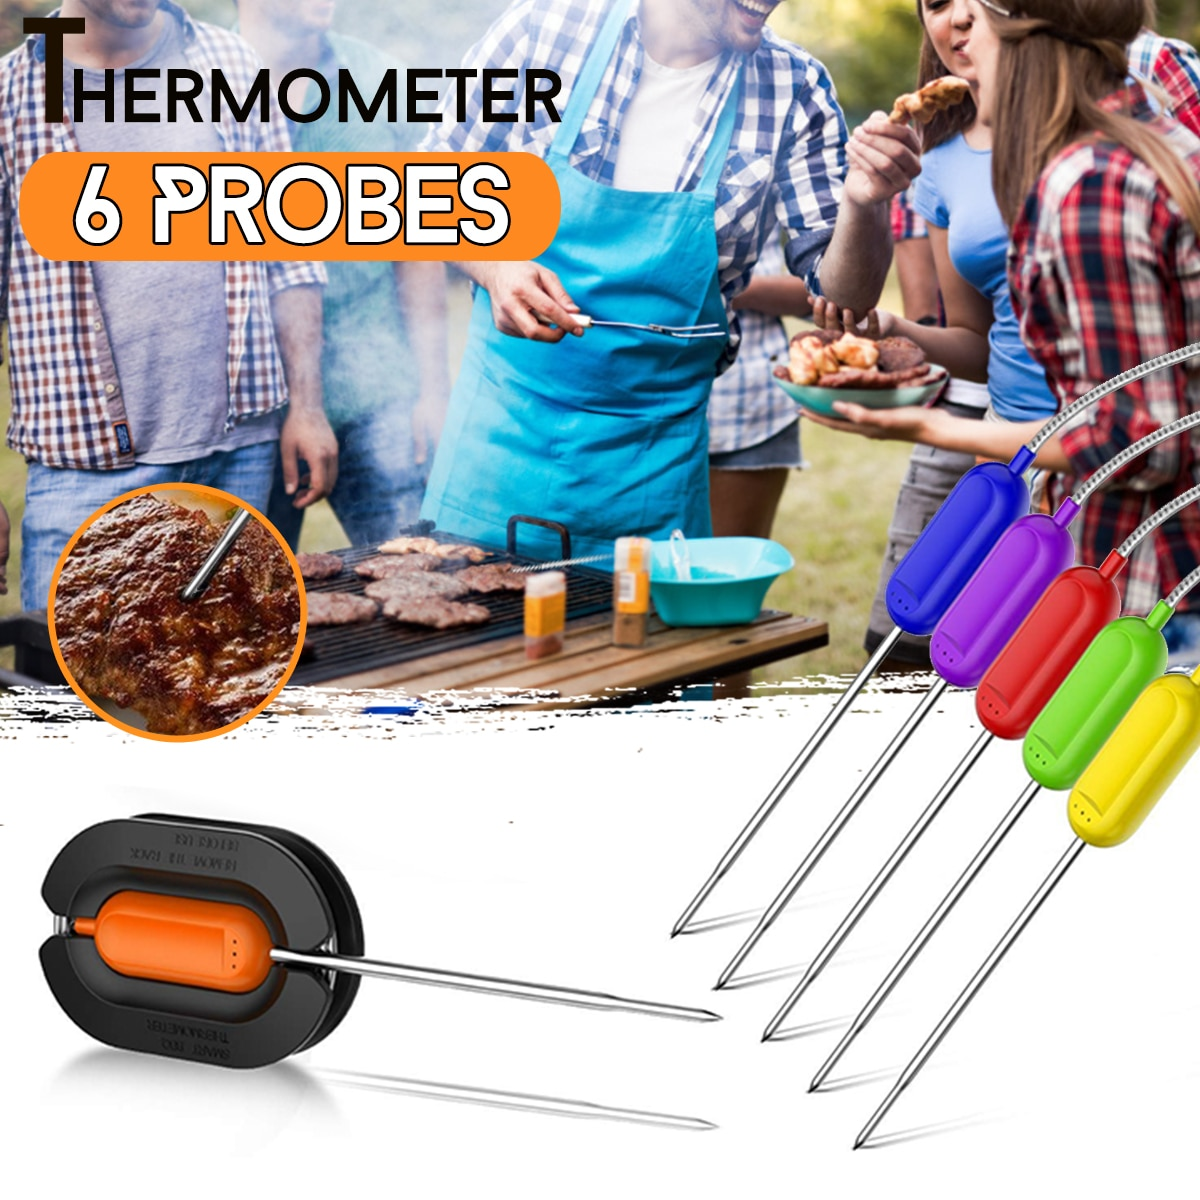 6pcs/set 15cm Digital Wireless Smart BBQ Grill Barbecue Meat Food Cooking Smoker Thermometer Kitchen Tool Stainless Steel Probes